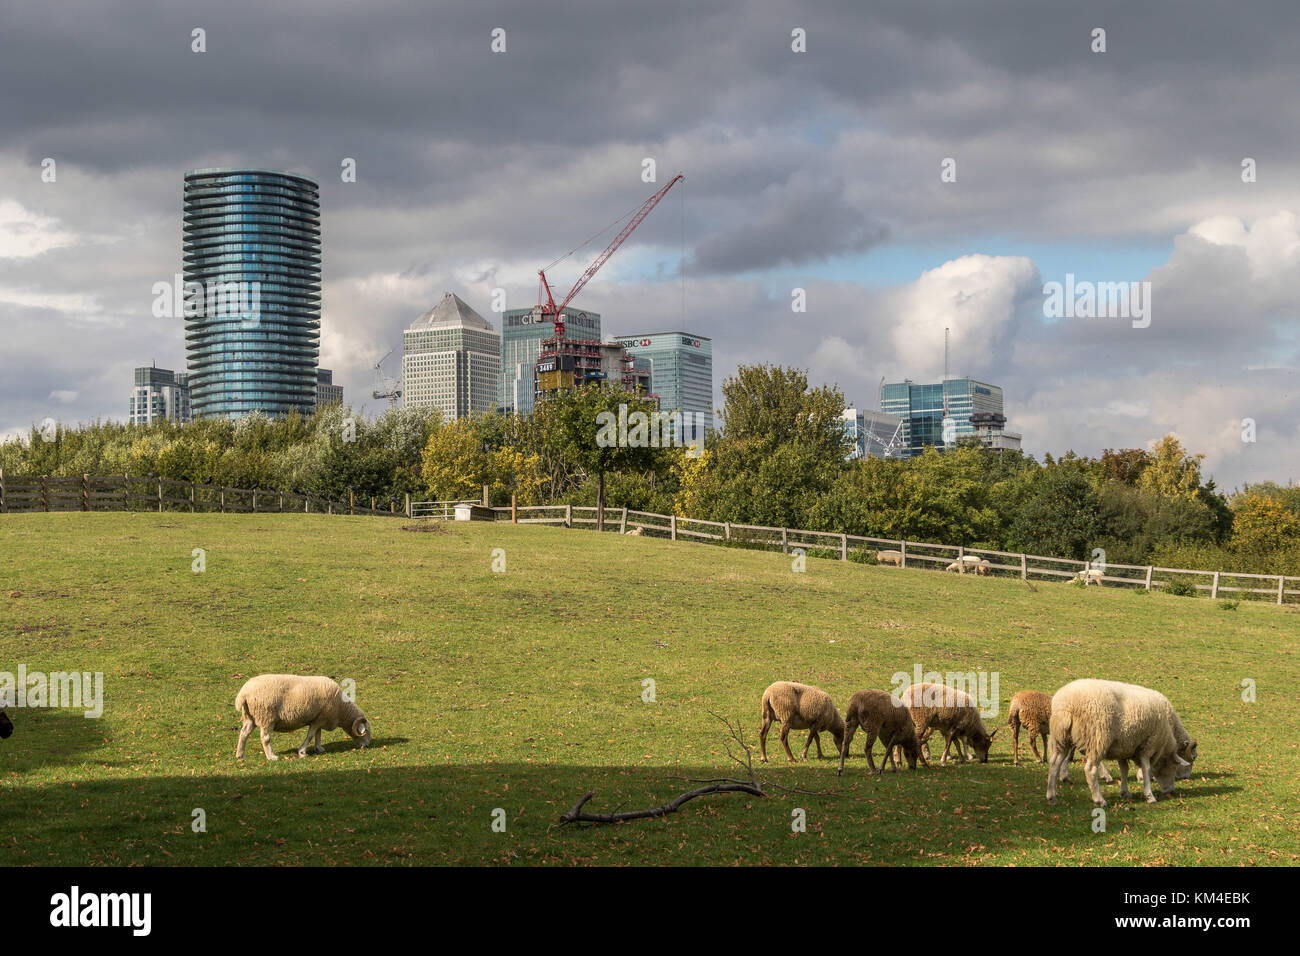 Sheep grazing on Urban pasture land at Mudchute City Farm  in View of the Glass And Steel Towers Of Canary Wharf - Stock Image